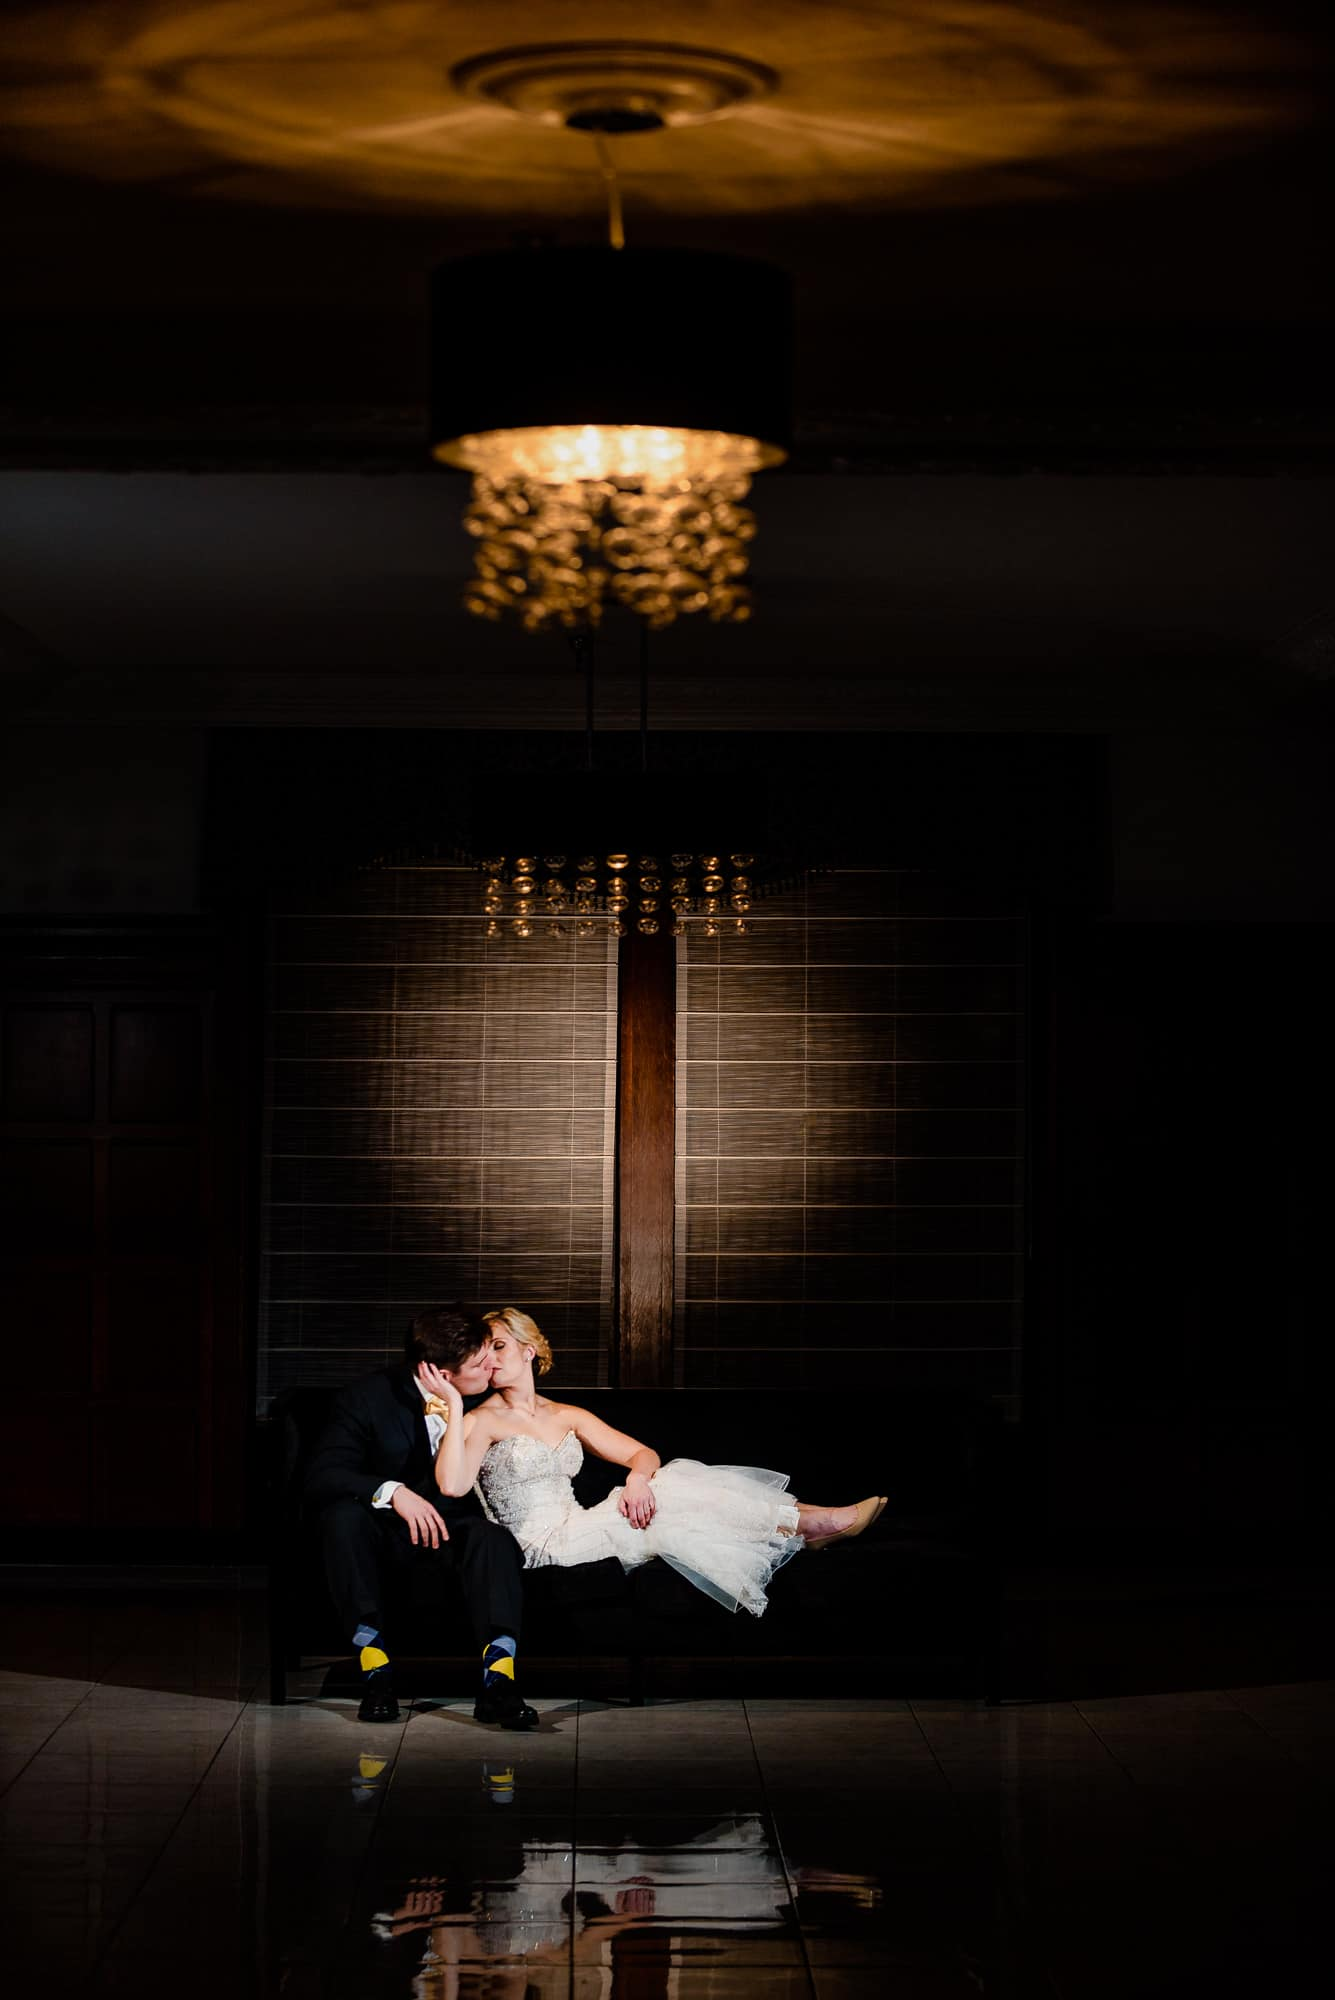 epic wedding shot if bride and groom at the end of their wedding night